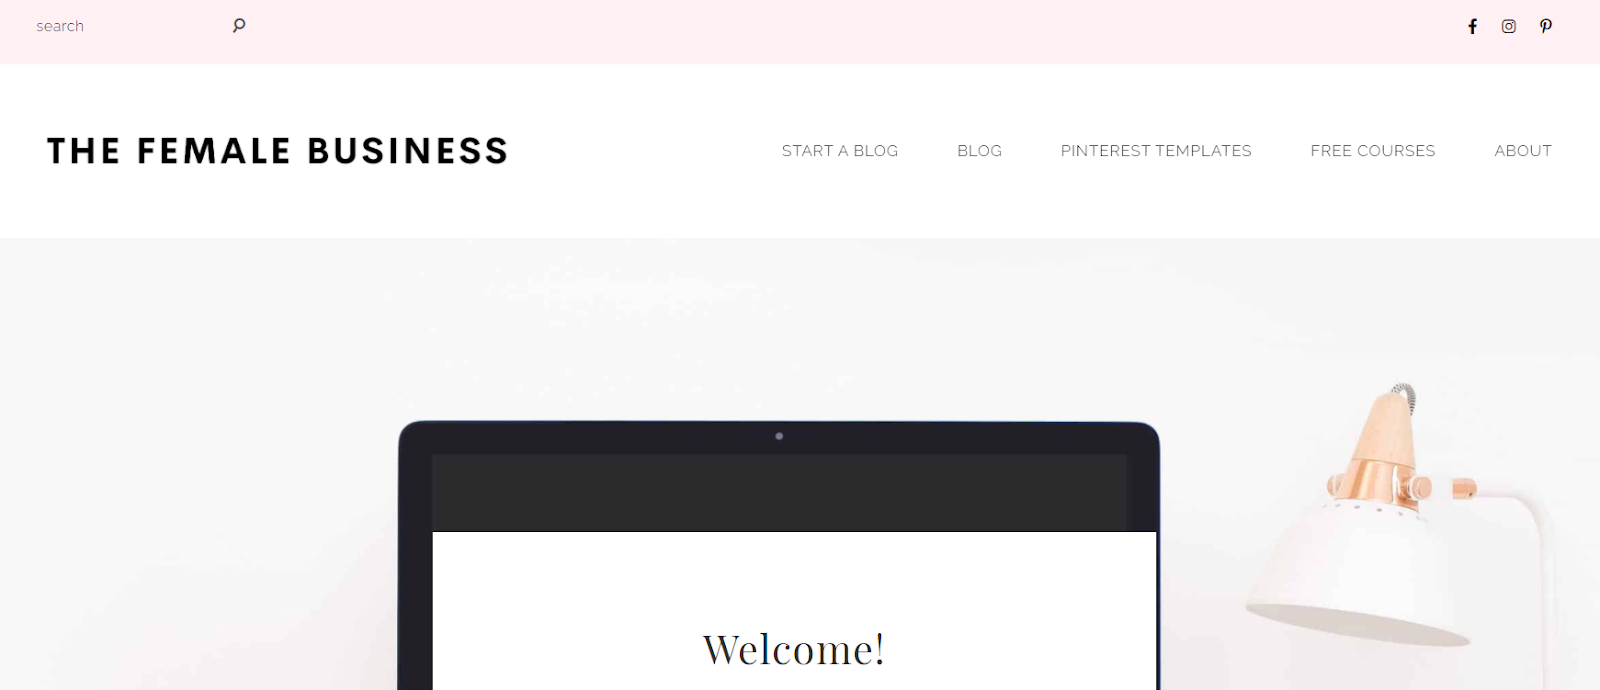 The Female Business blog